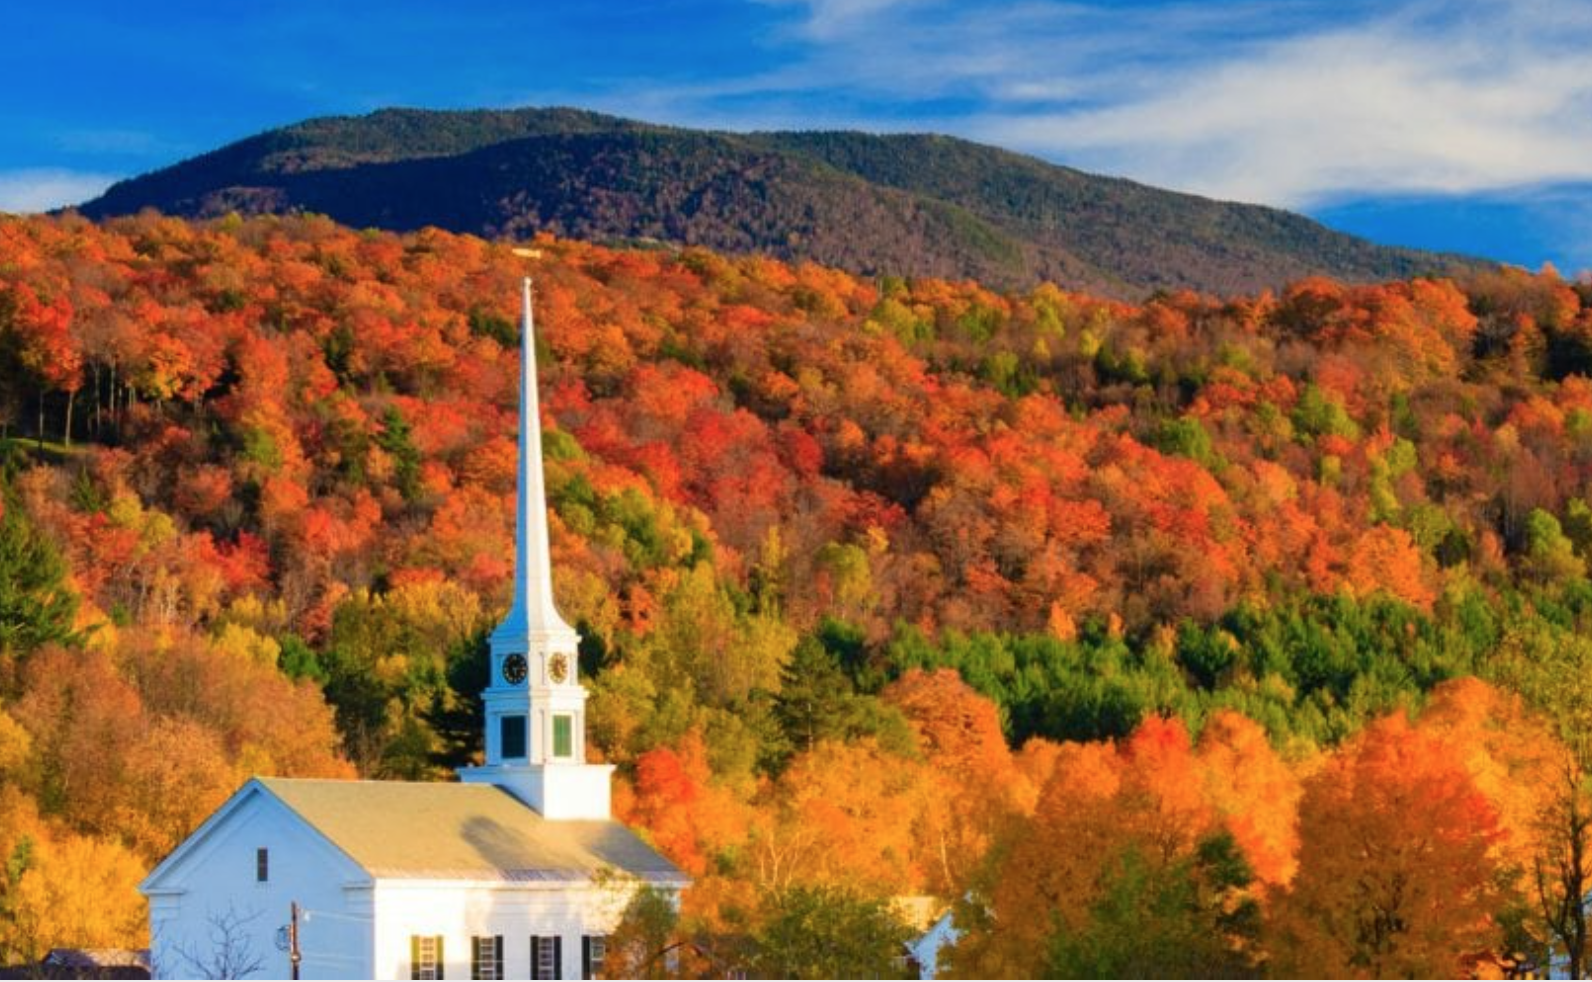 Things to do in Stowe, Vermont